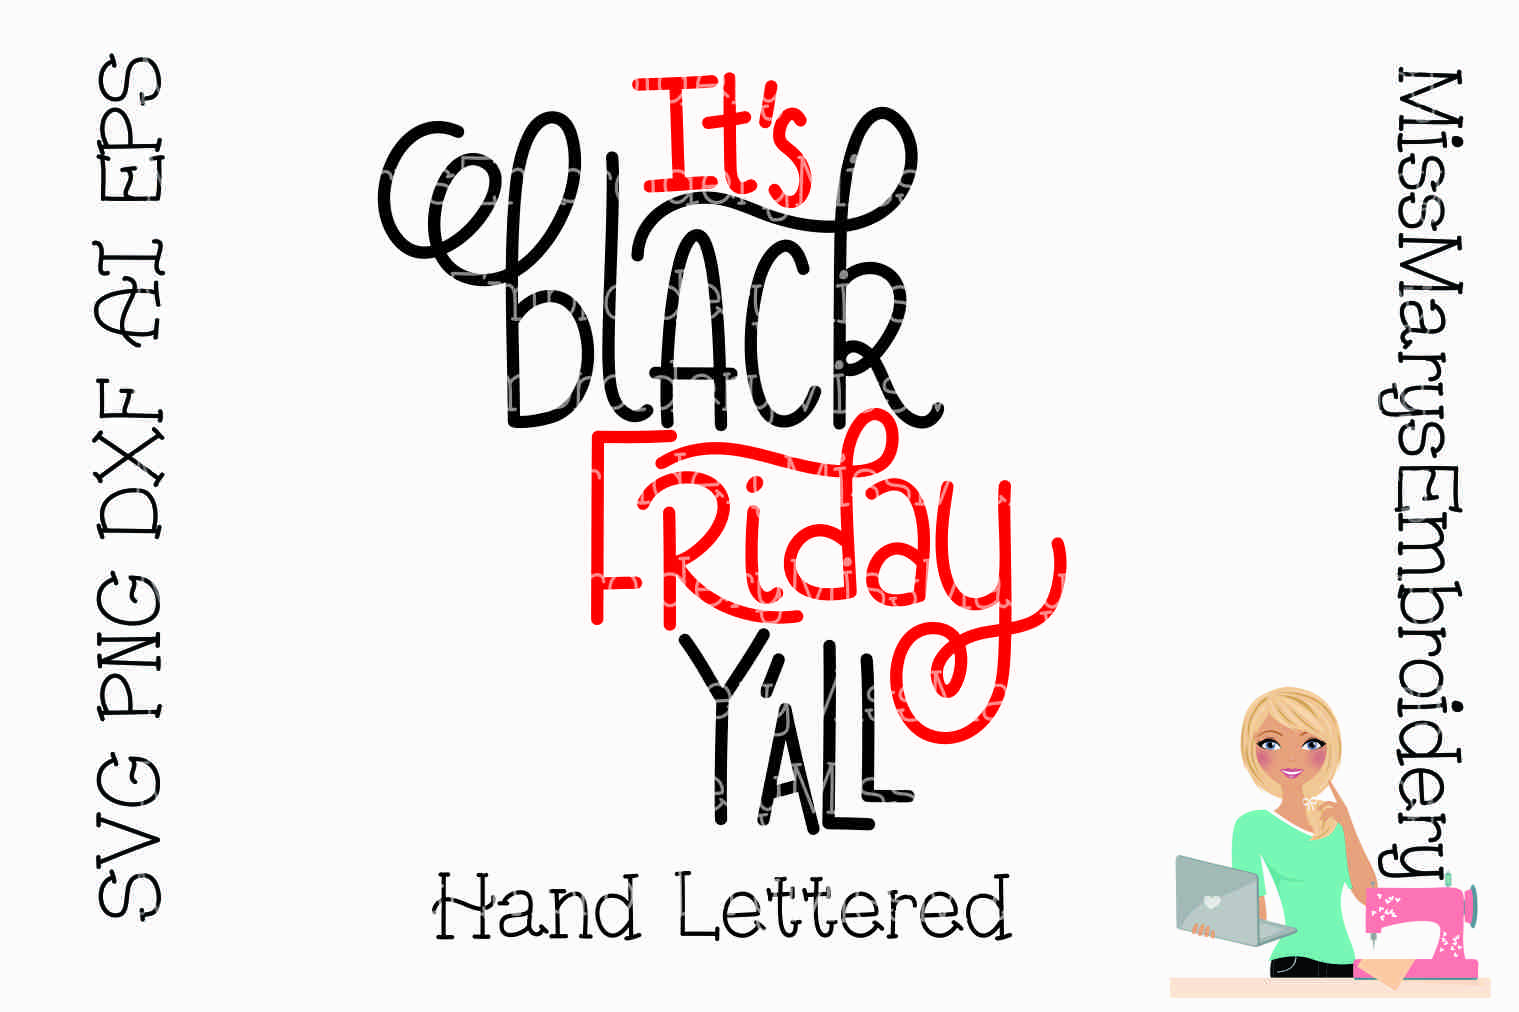 Hand Lettered Black Friday SVG Saying example image 1